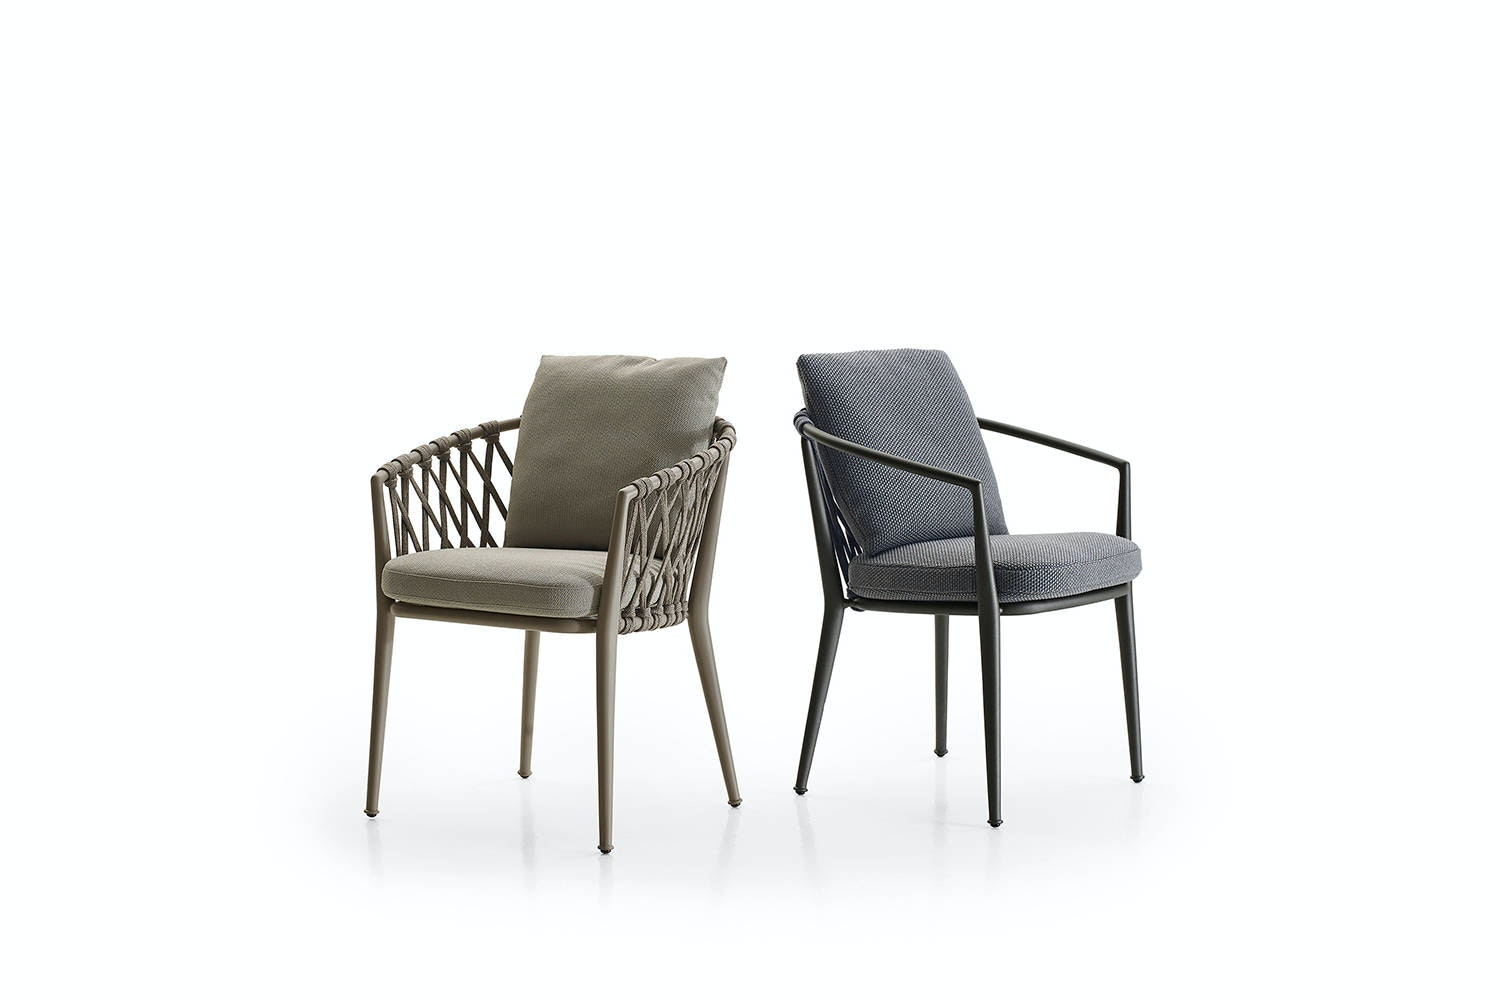 Erica Chair by Antonio Citterio for B&B Italia